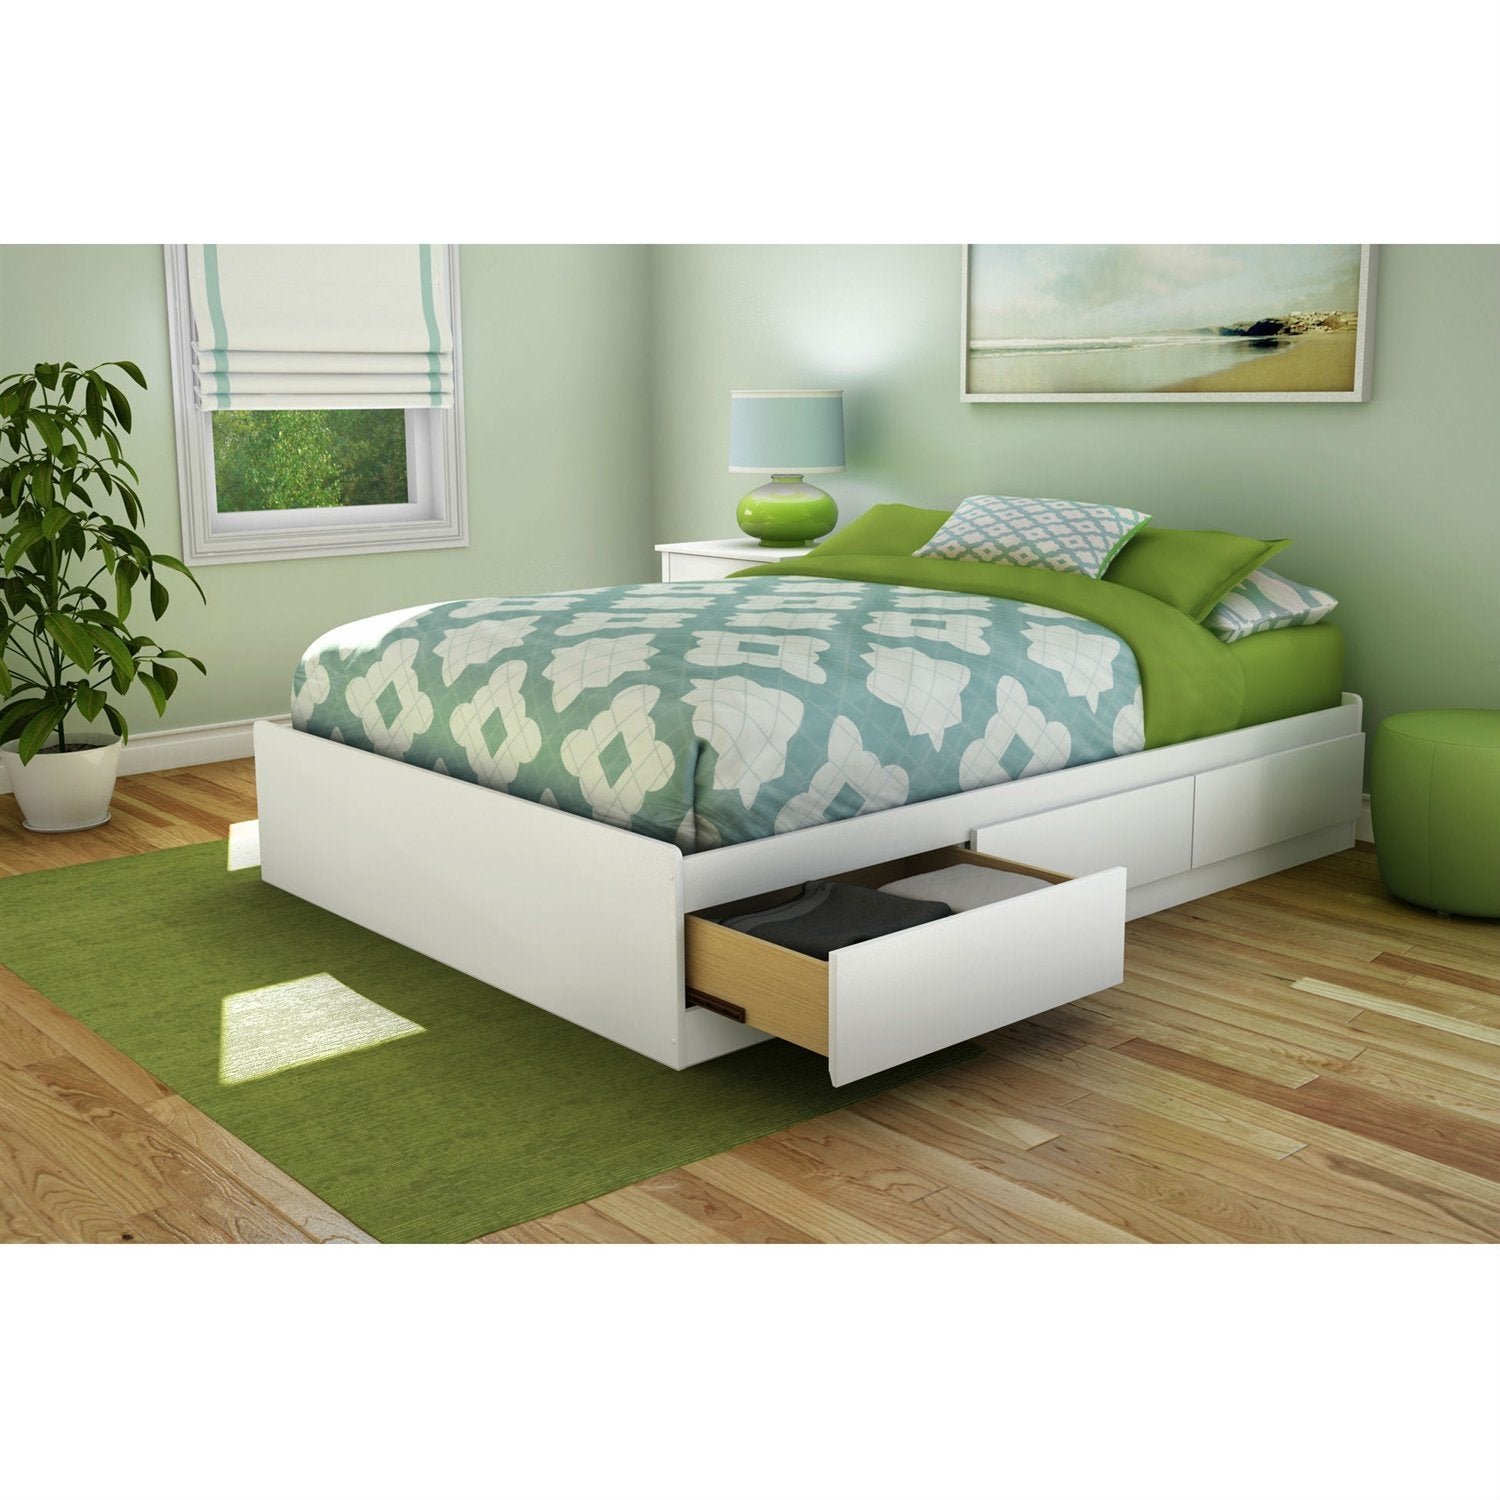 206fe46bfb4b Full size Contemporary Platform Bed with 3 Storage Drawers in White